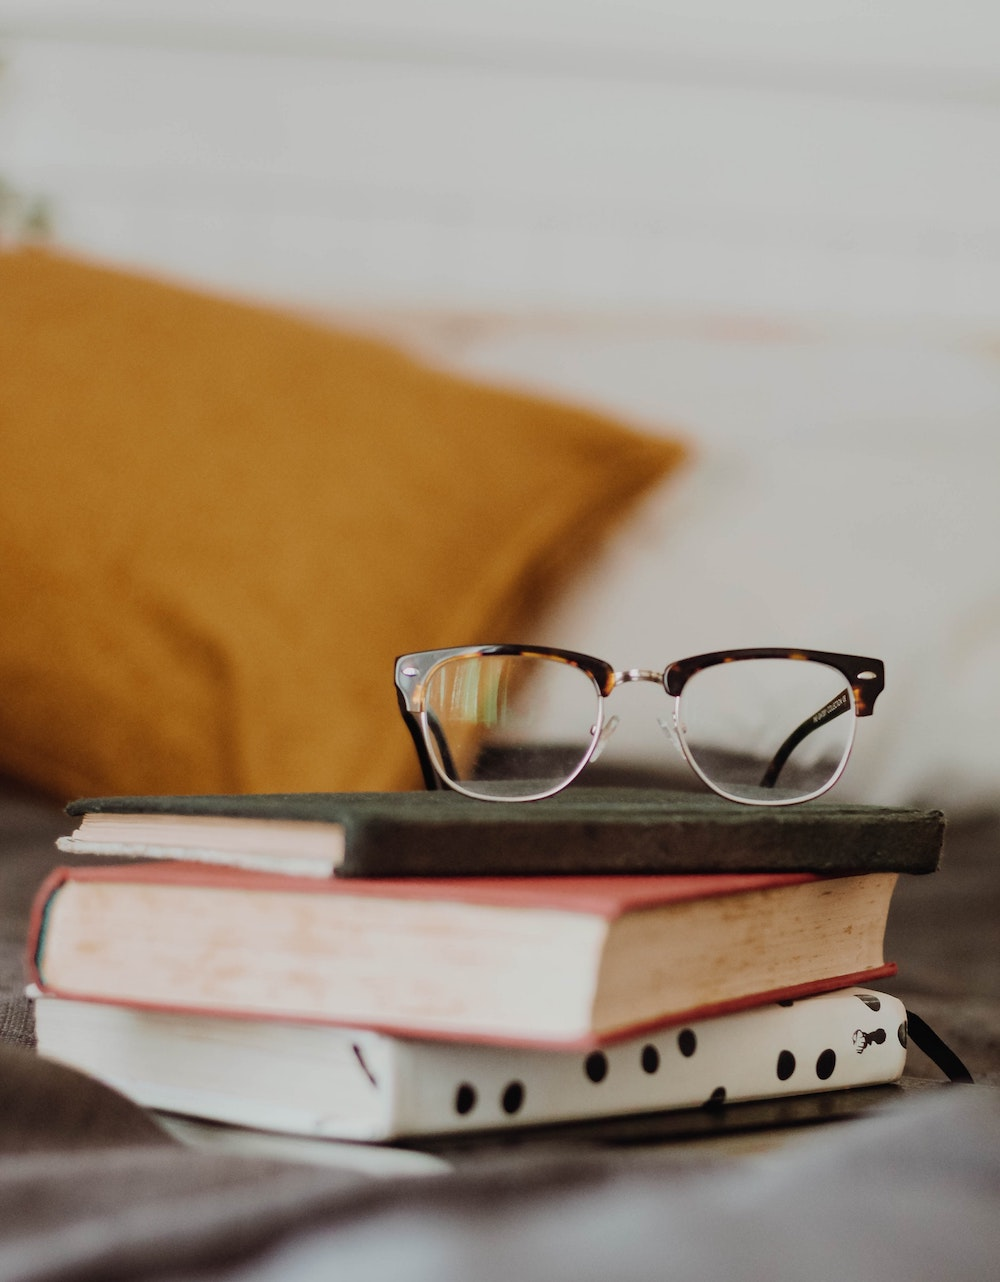 How do you keep your scholarship? Here are 5 tips.